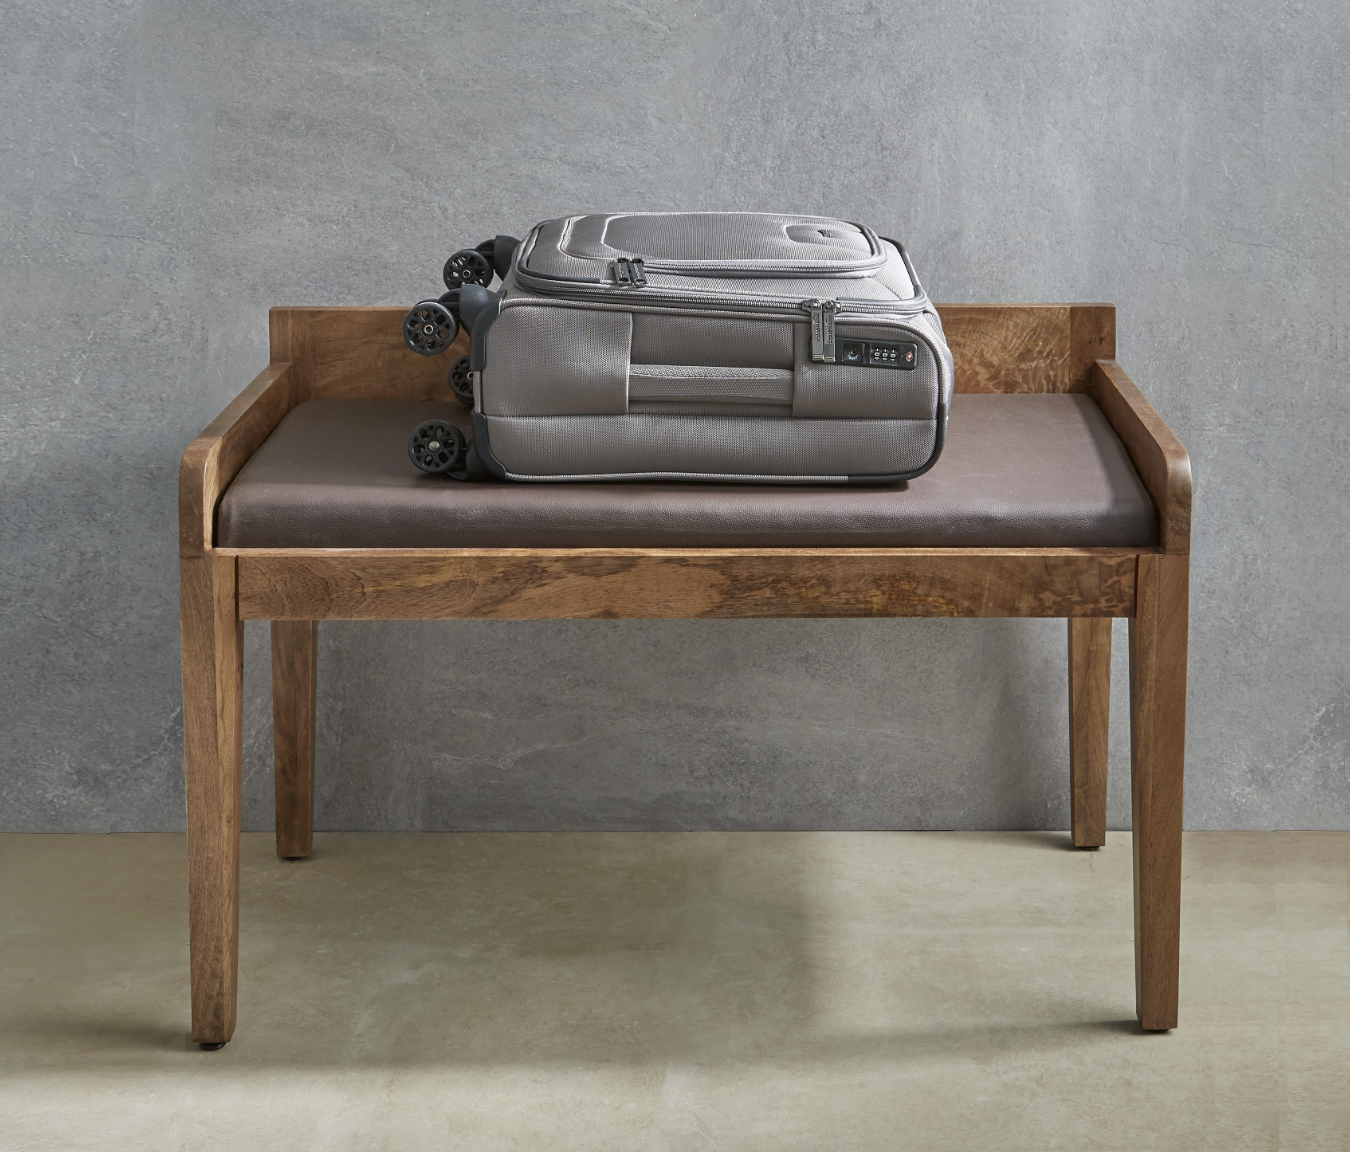 The Bassa unit doubles as a luggage storage bench.